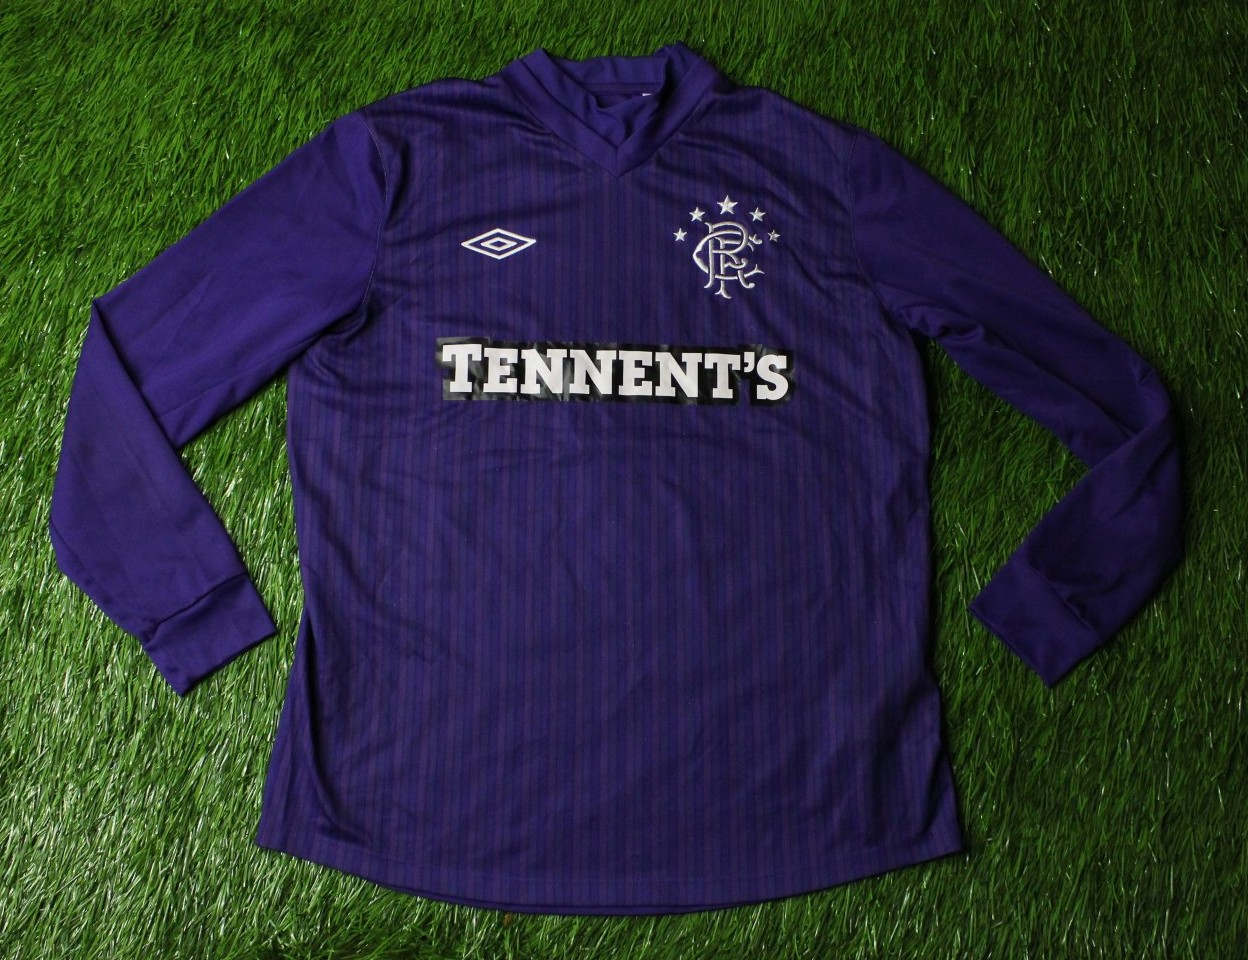 cbc6fa4e060 Rangers Goalkeeper maglia di calcio 2011 - 2012. Sponsored by Tennent's